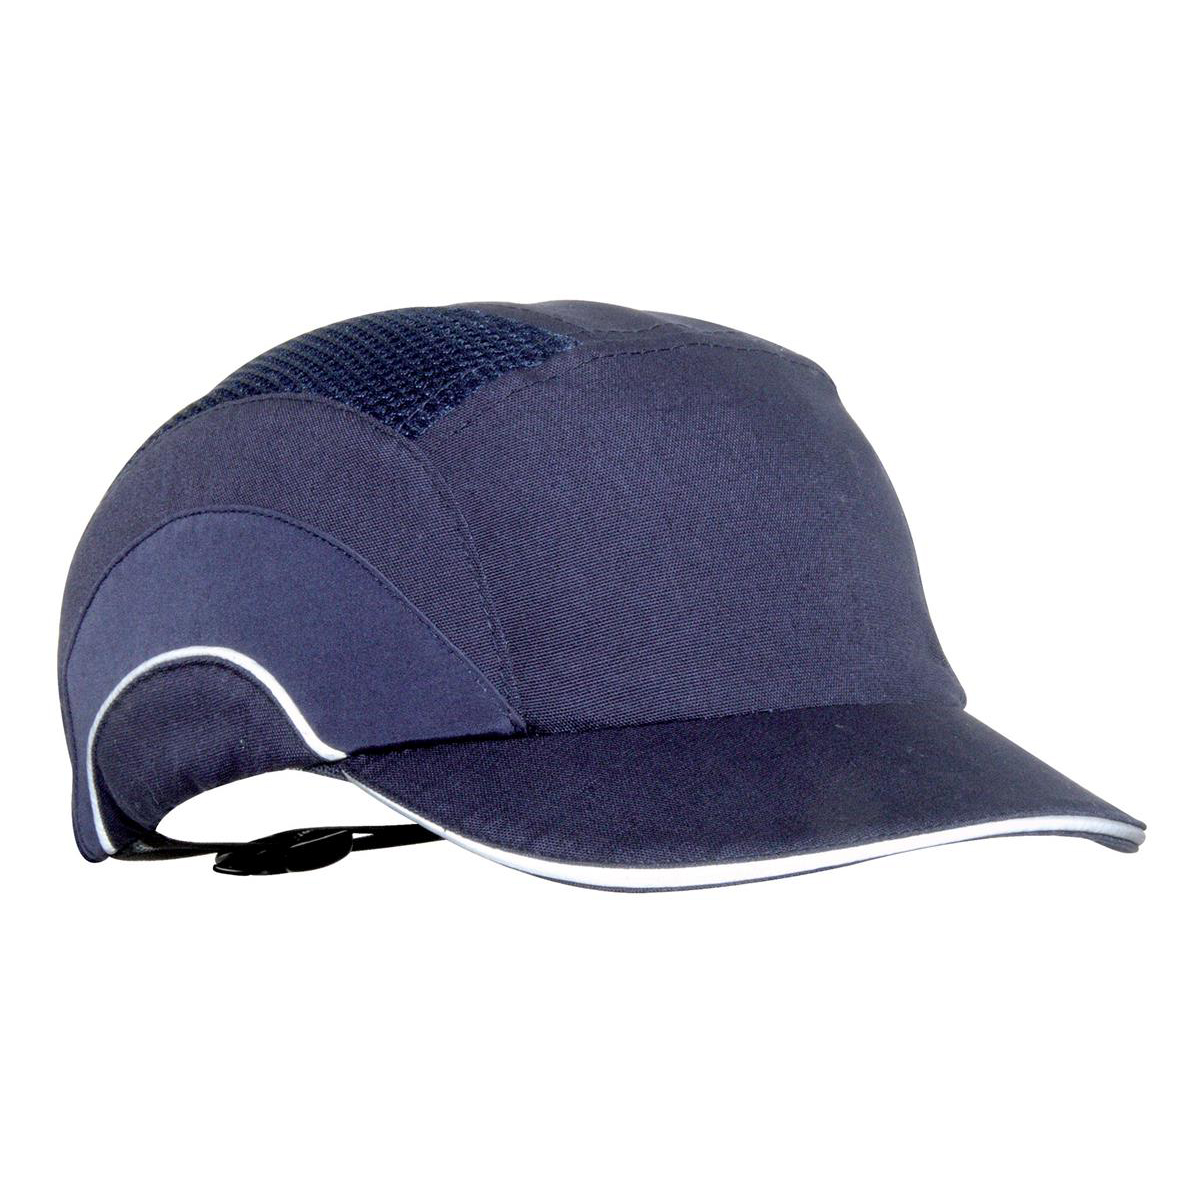 fb115ce62 JSP Hard Cap A1 Plus Ventilated Adjustable with Short Peak 50mm Navy ...